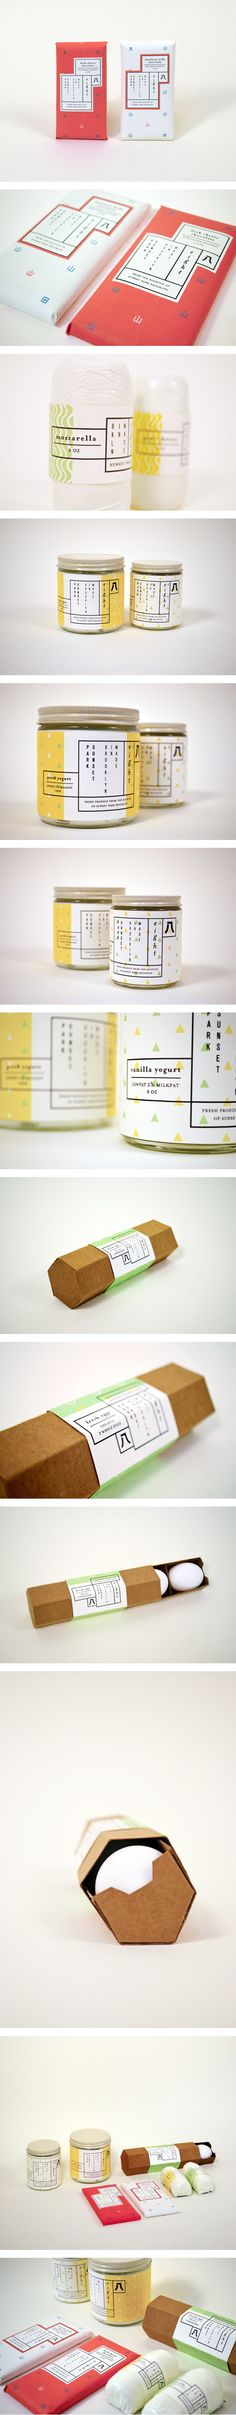 8 | Eight Rooftop Gardens Packaging by Esther Li